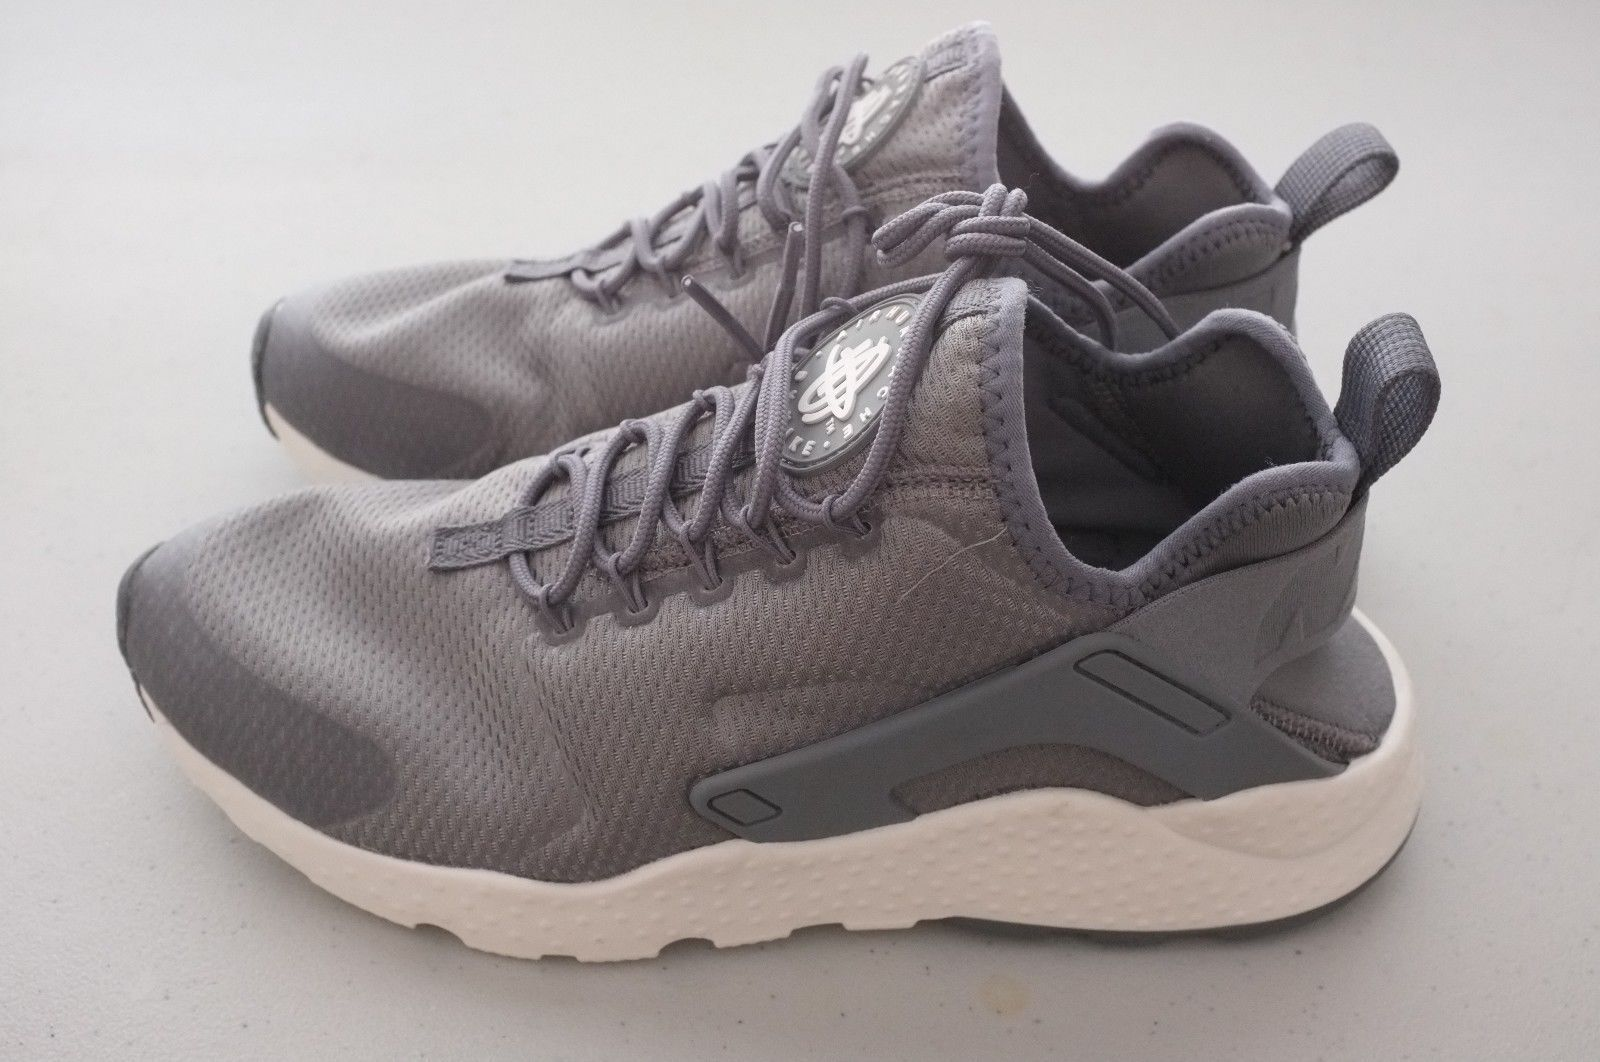 promo code 7606a b65d0 Nike Womens Air Huarache Run low Ultra Shoes Cool Gray White Sz 7.5  (819151-006)